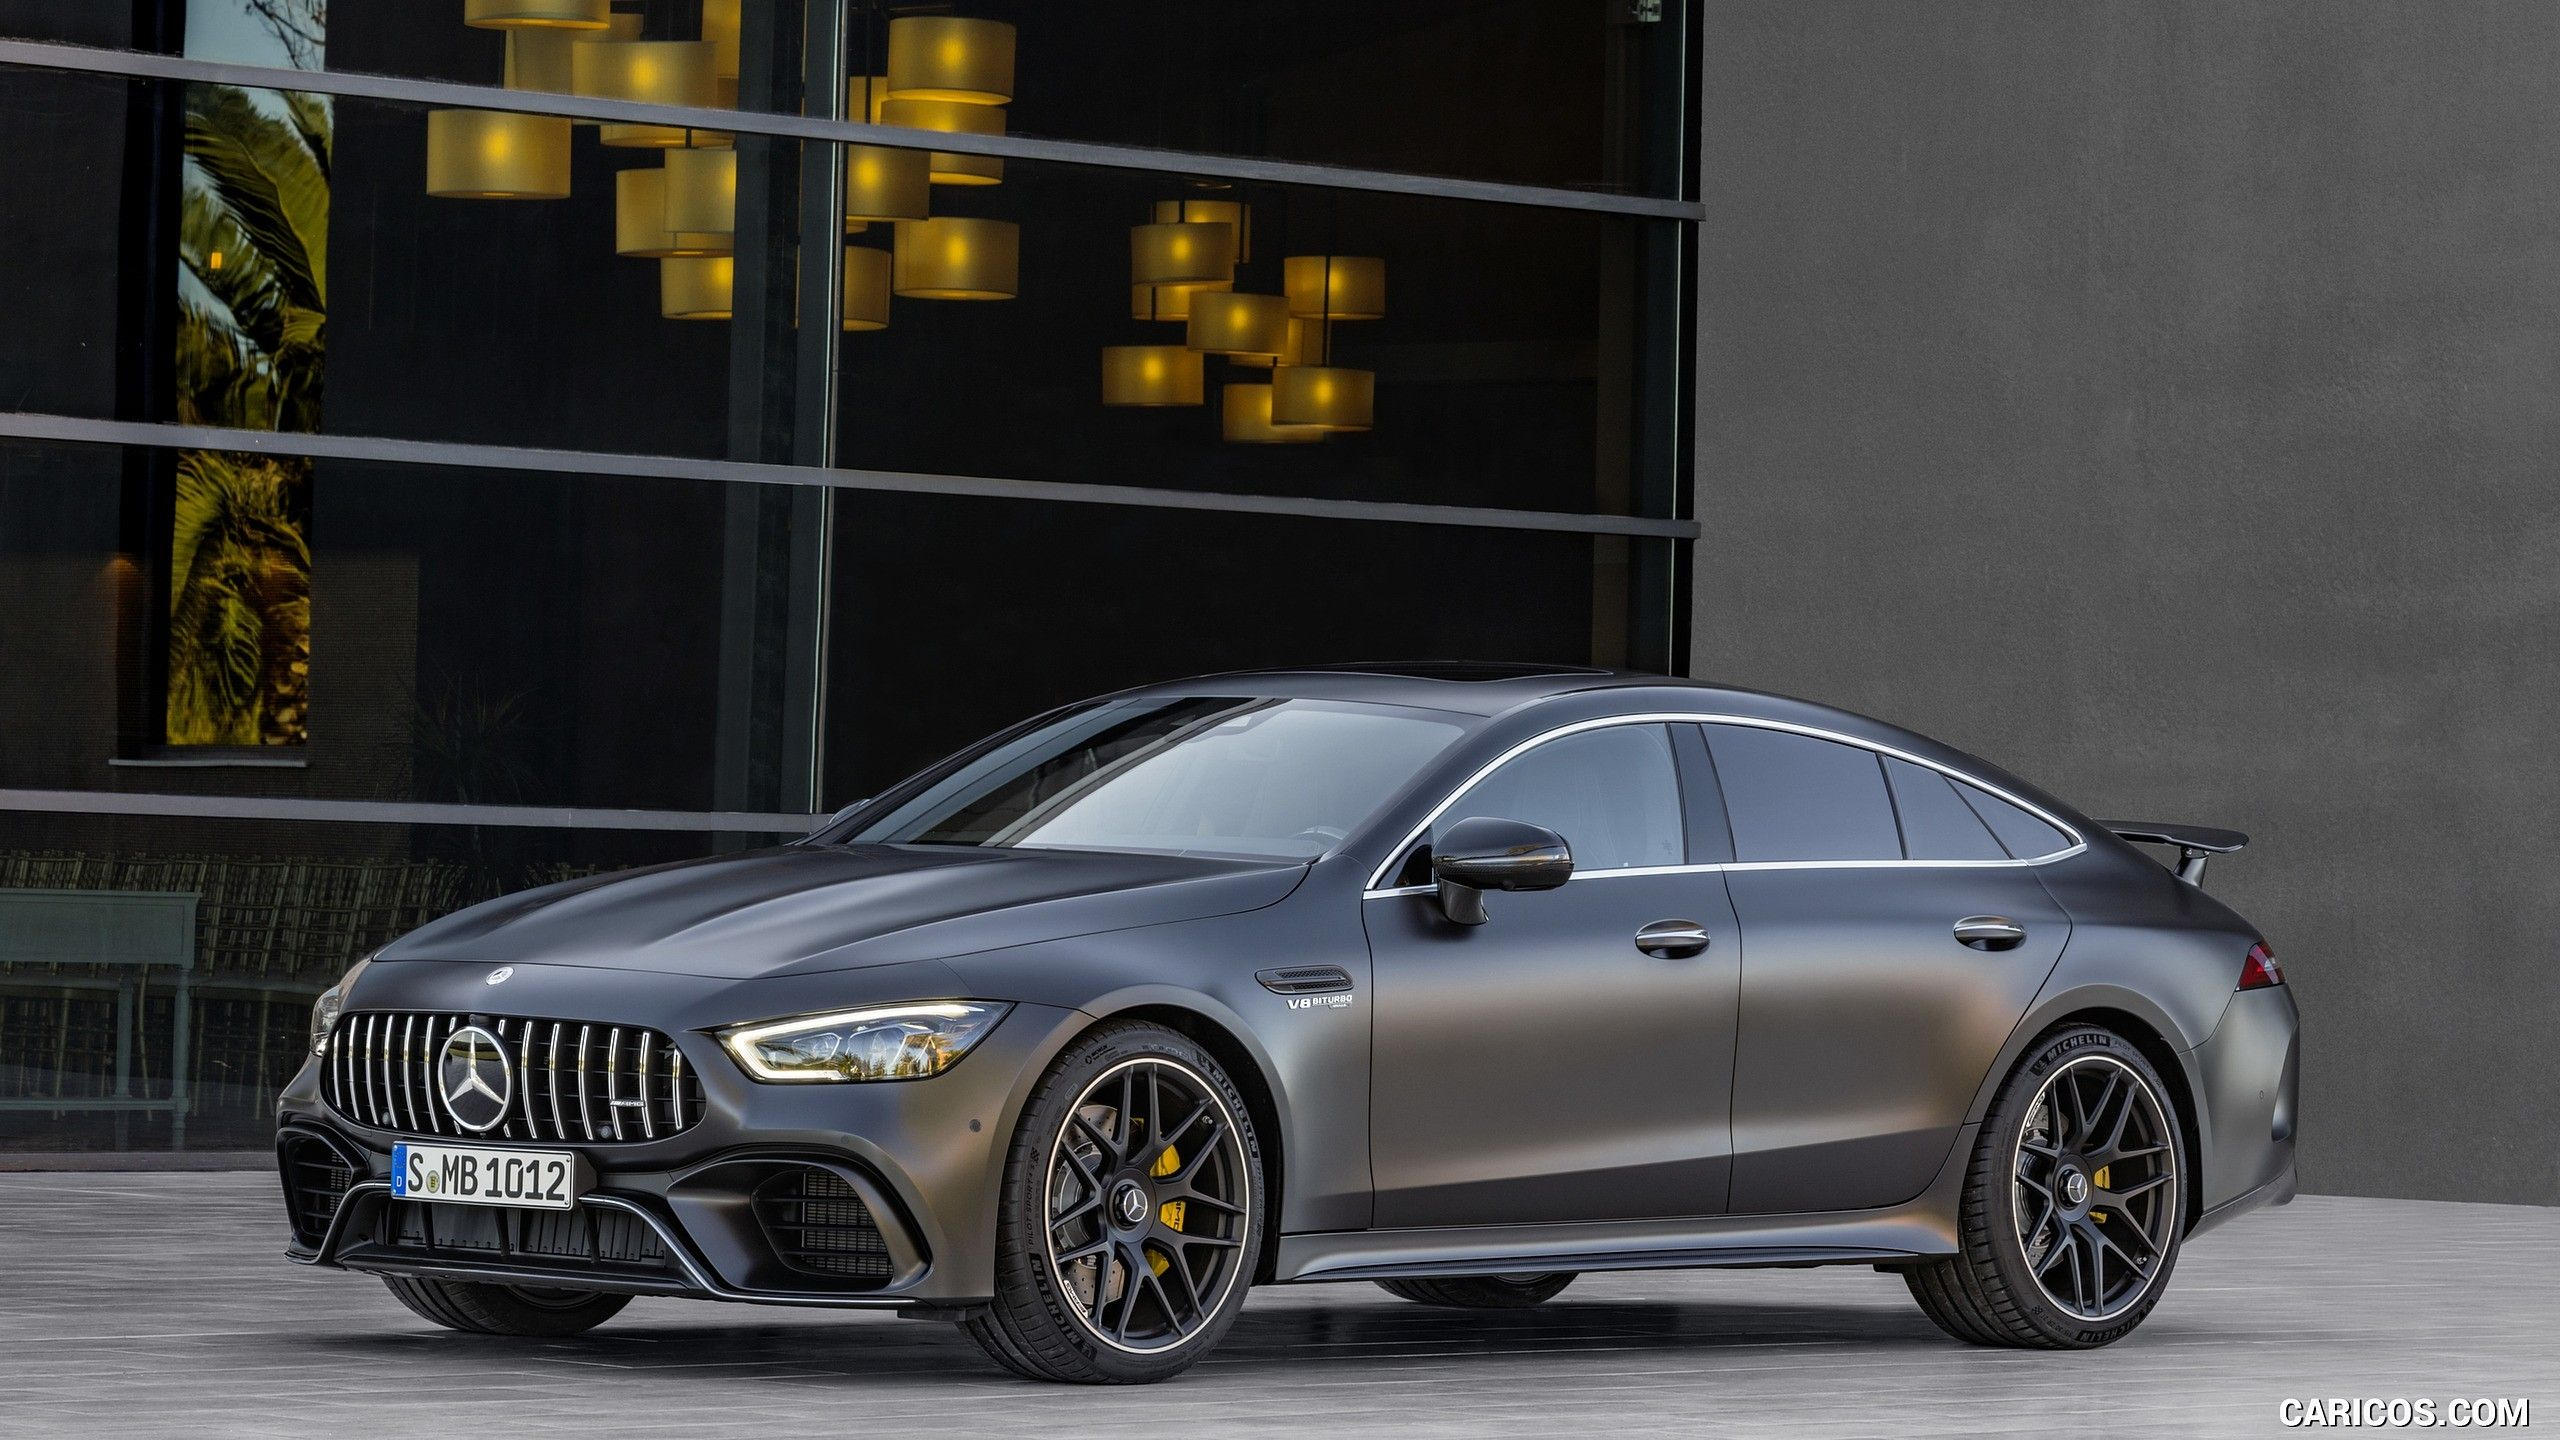 2019 Mercedes Benz Amg Gt S Price And Release Date With Images